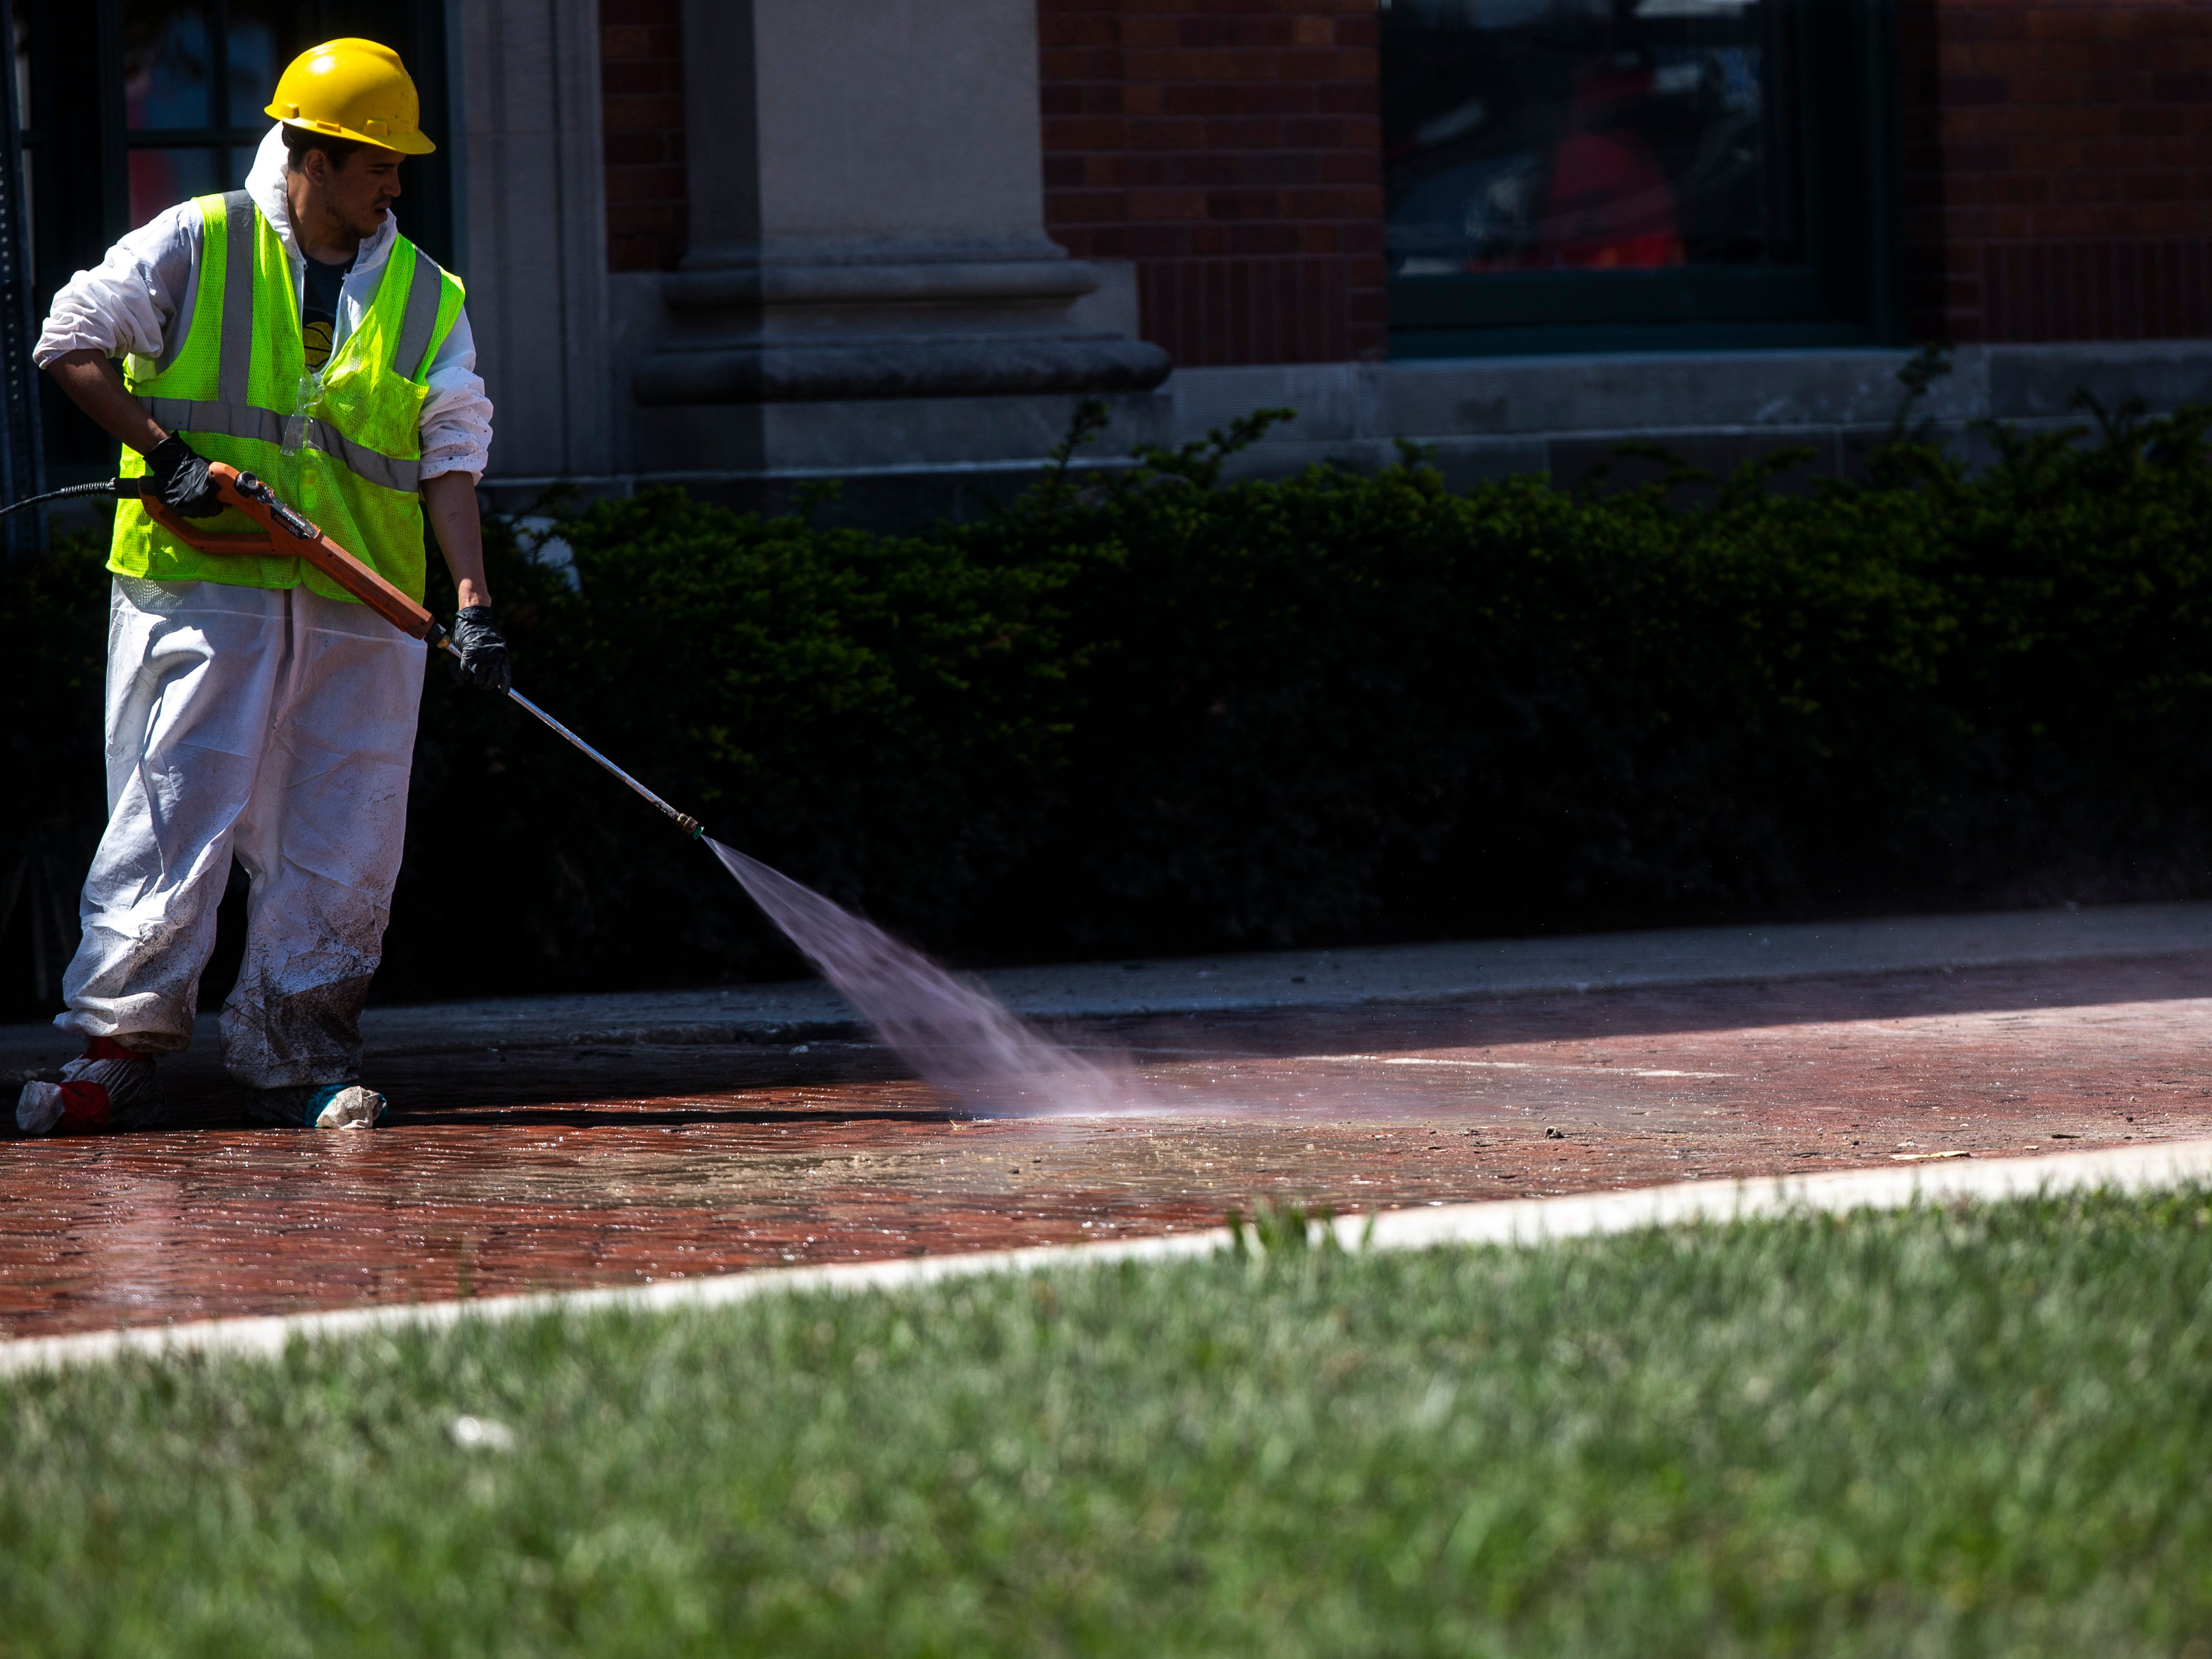 A worker power washes debris off of bricks as cleanup begins after floodwaters receded, Wednesday, May 15, 2019, along River Drive in downtown Davenport, Iowa.